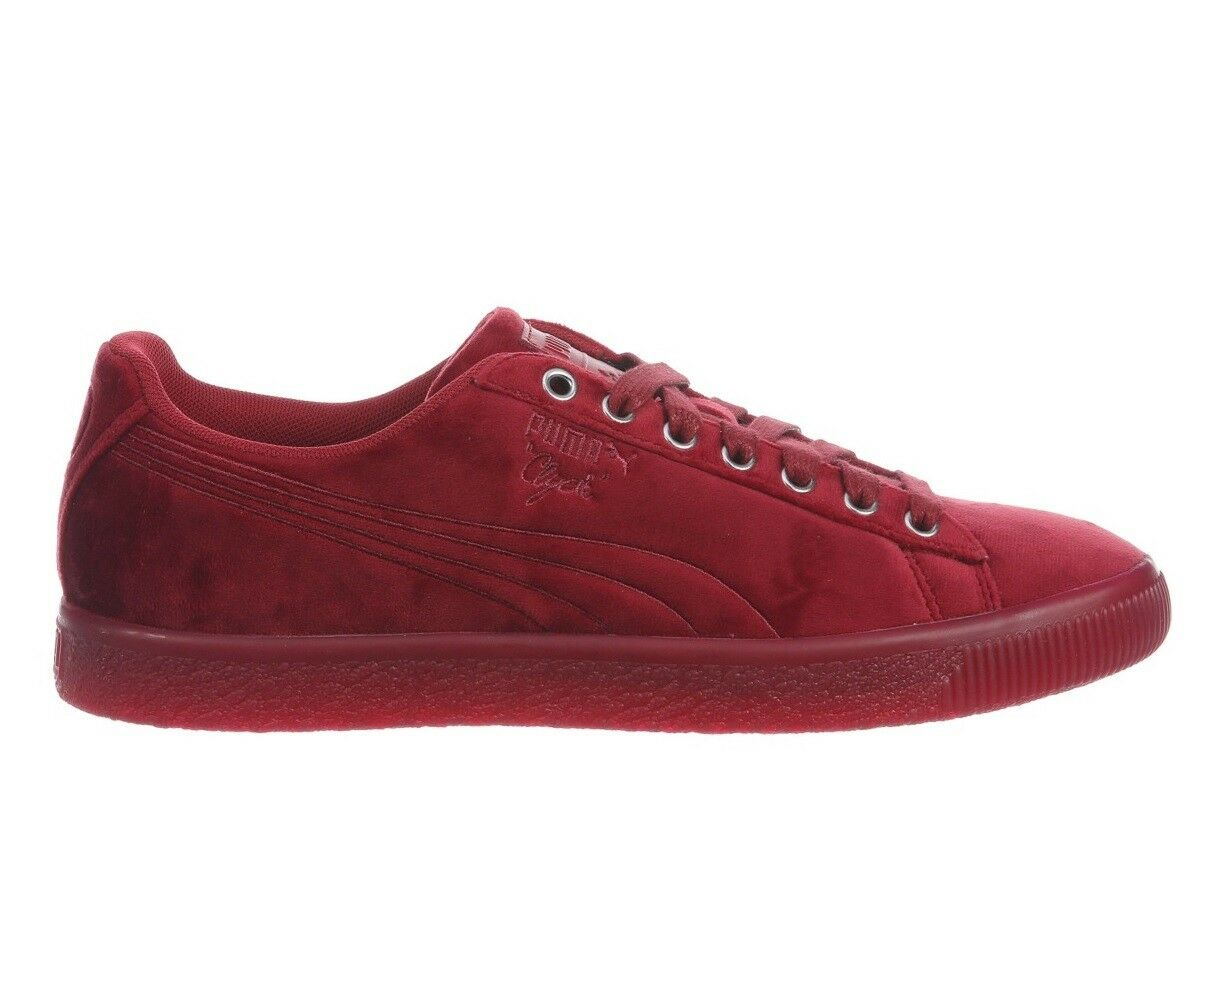 Puma Clyde Velour Ice Mens 366549-04 Tibetan Red Velvet Athletic Shoes Comfortable